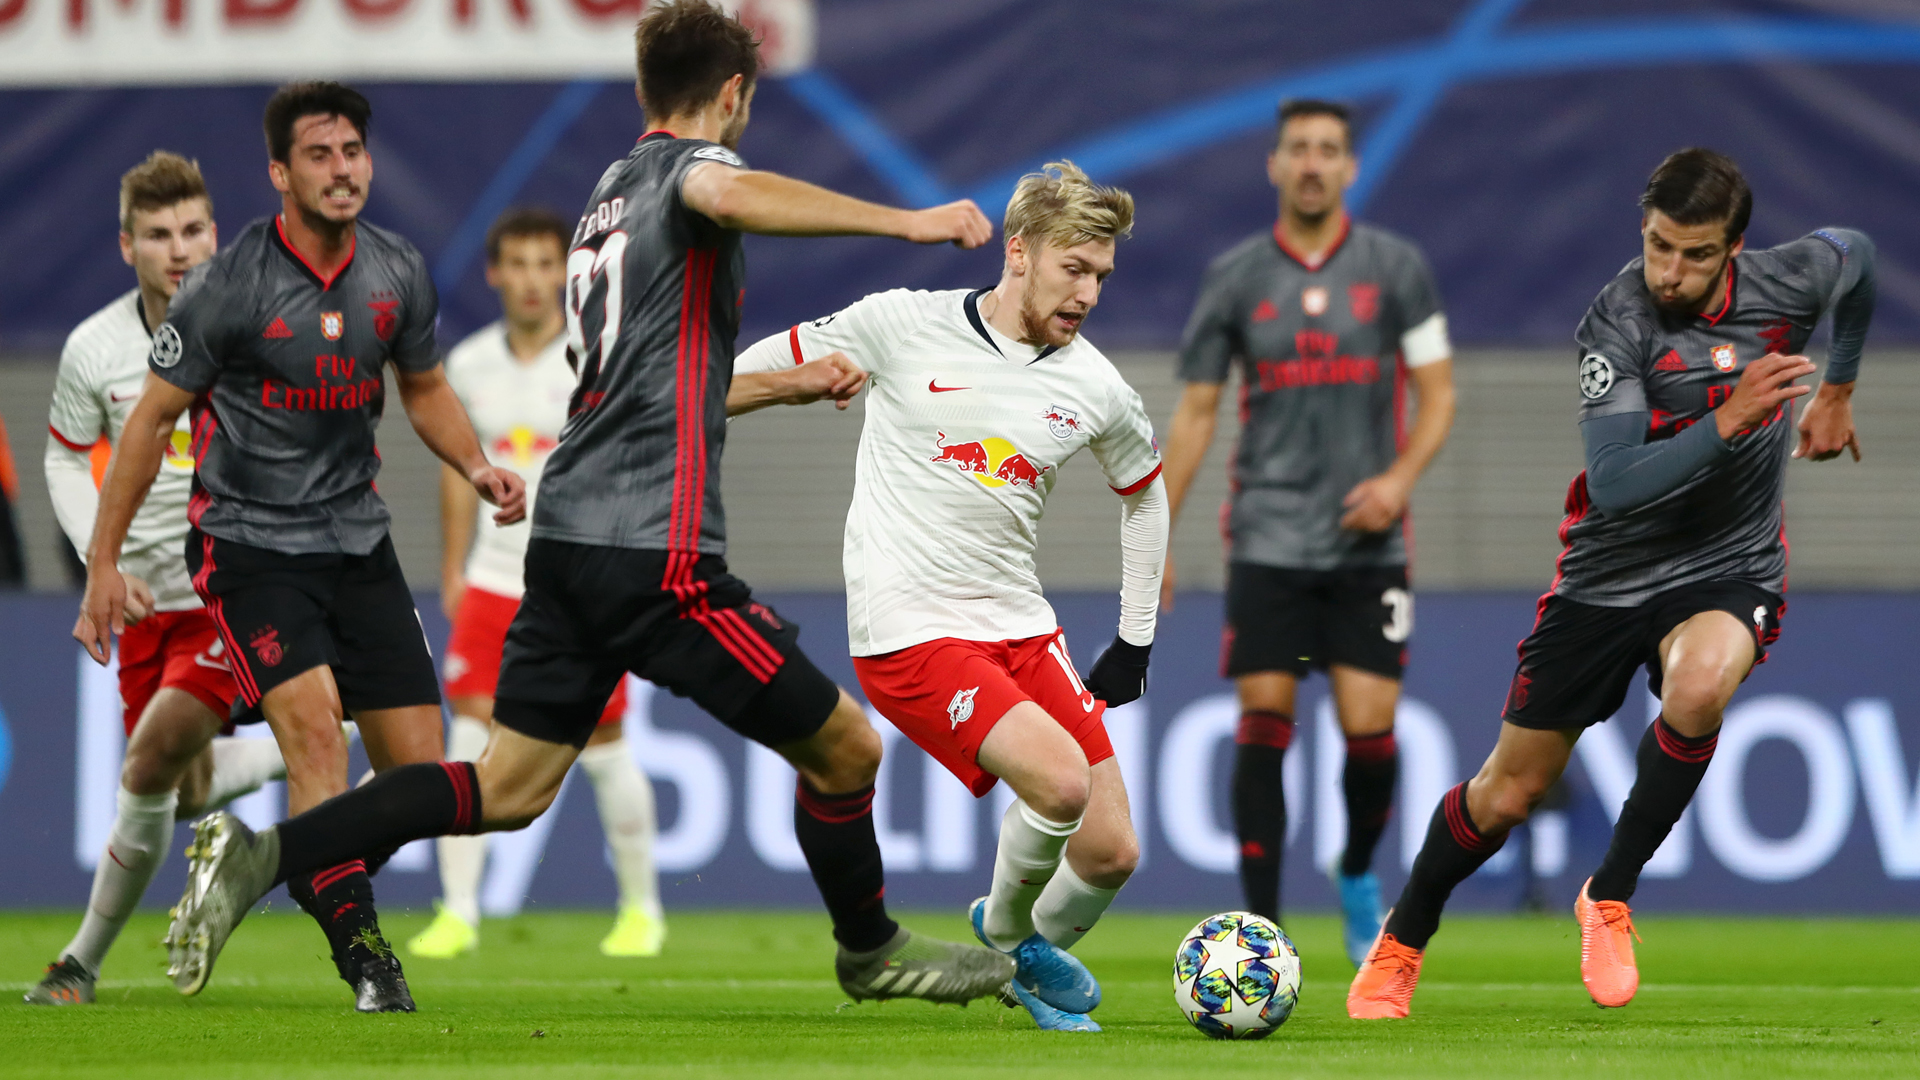 RB Leipzig 2-2 Benfica: Late Forsberg double sends hosts through to last 16